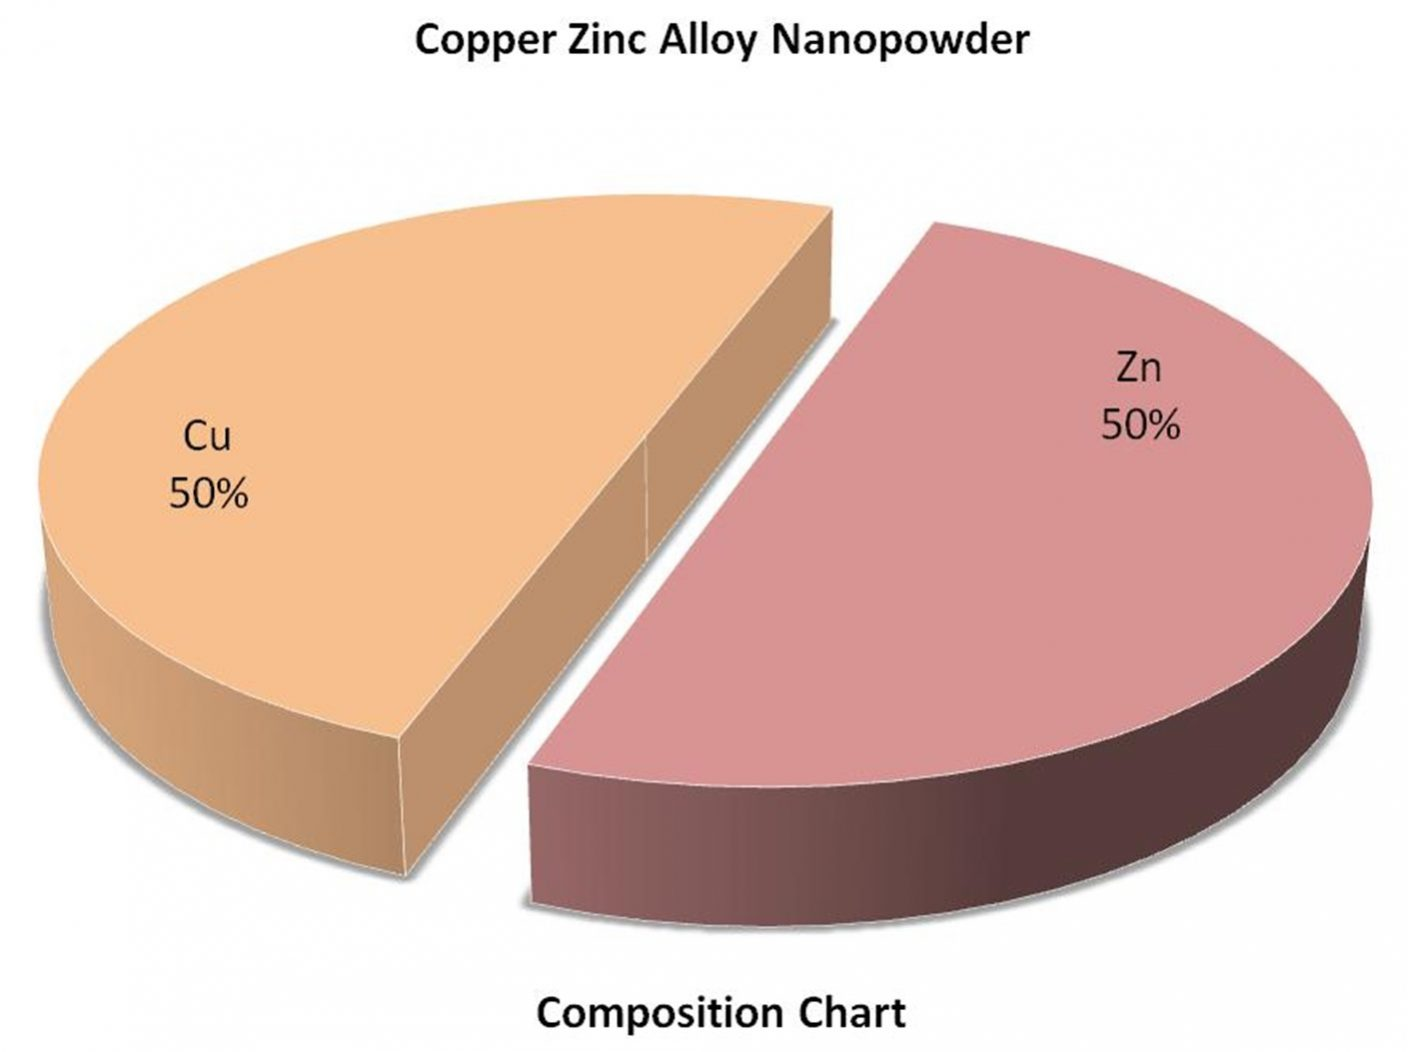 Composition Chart - Cu:Zn Alloy Nanoparticles